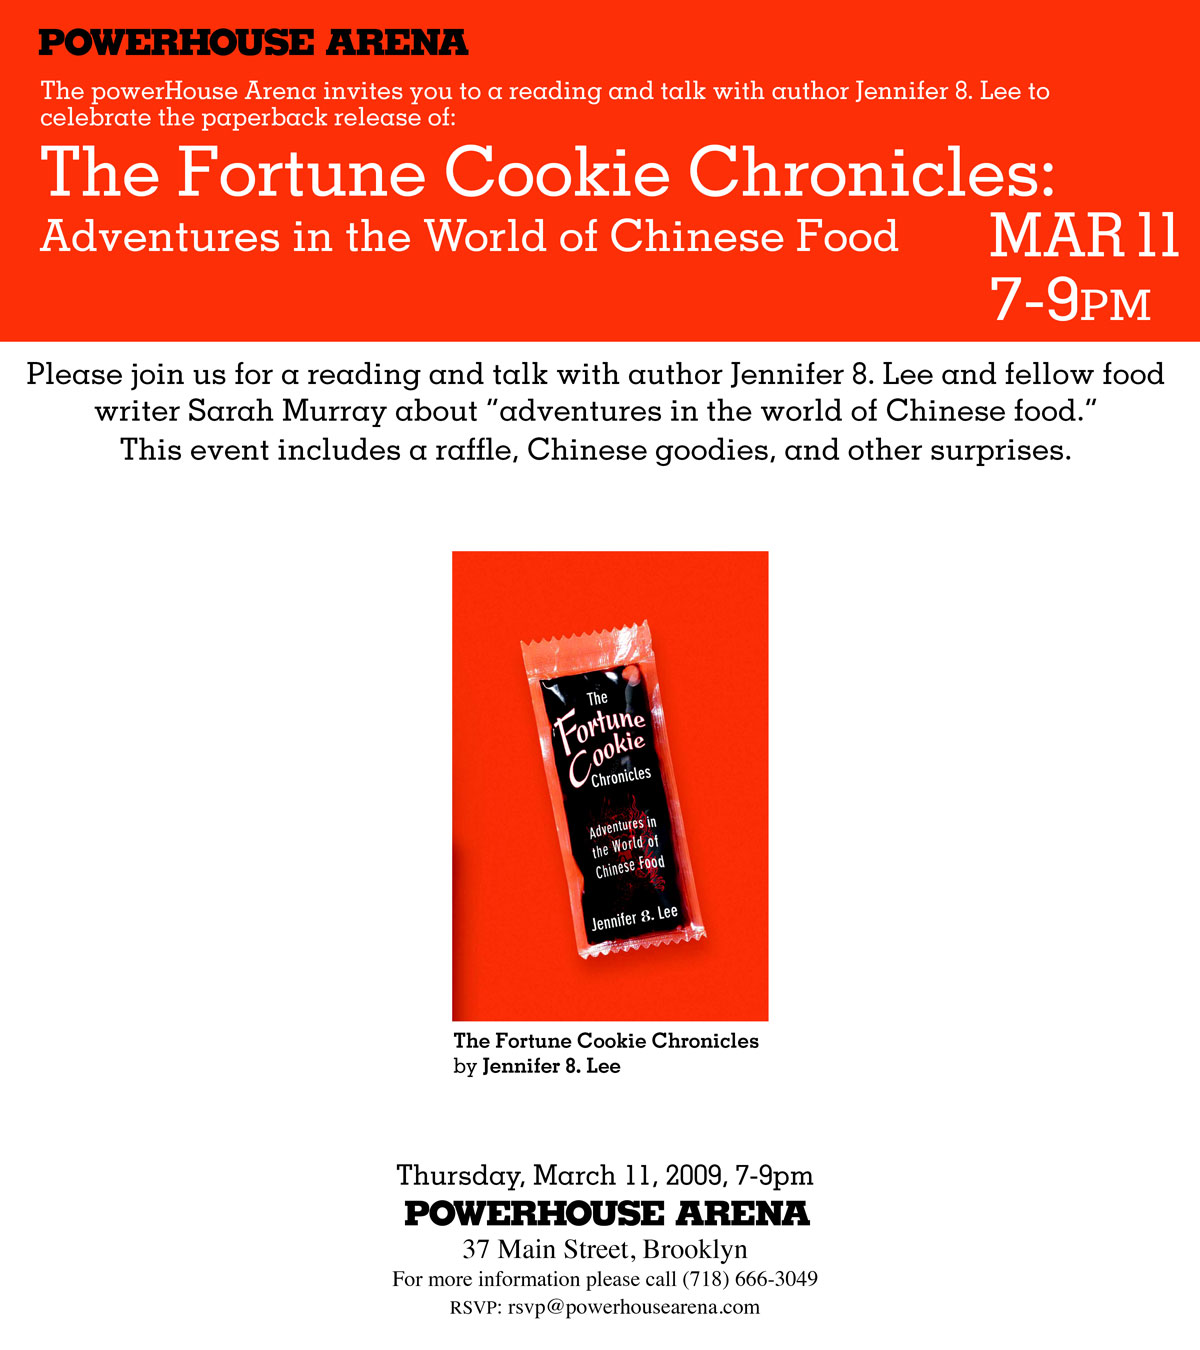 powerHouse invite for Fortune Cookie Chronicles event on March 11, 2009 7-9 pm